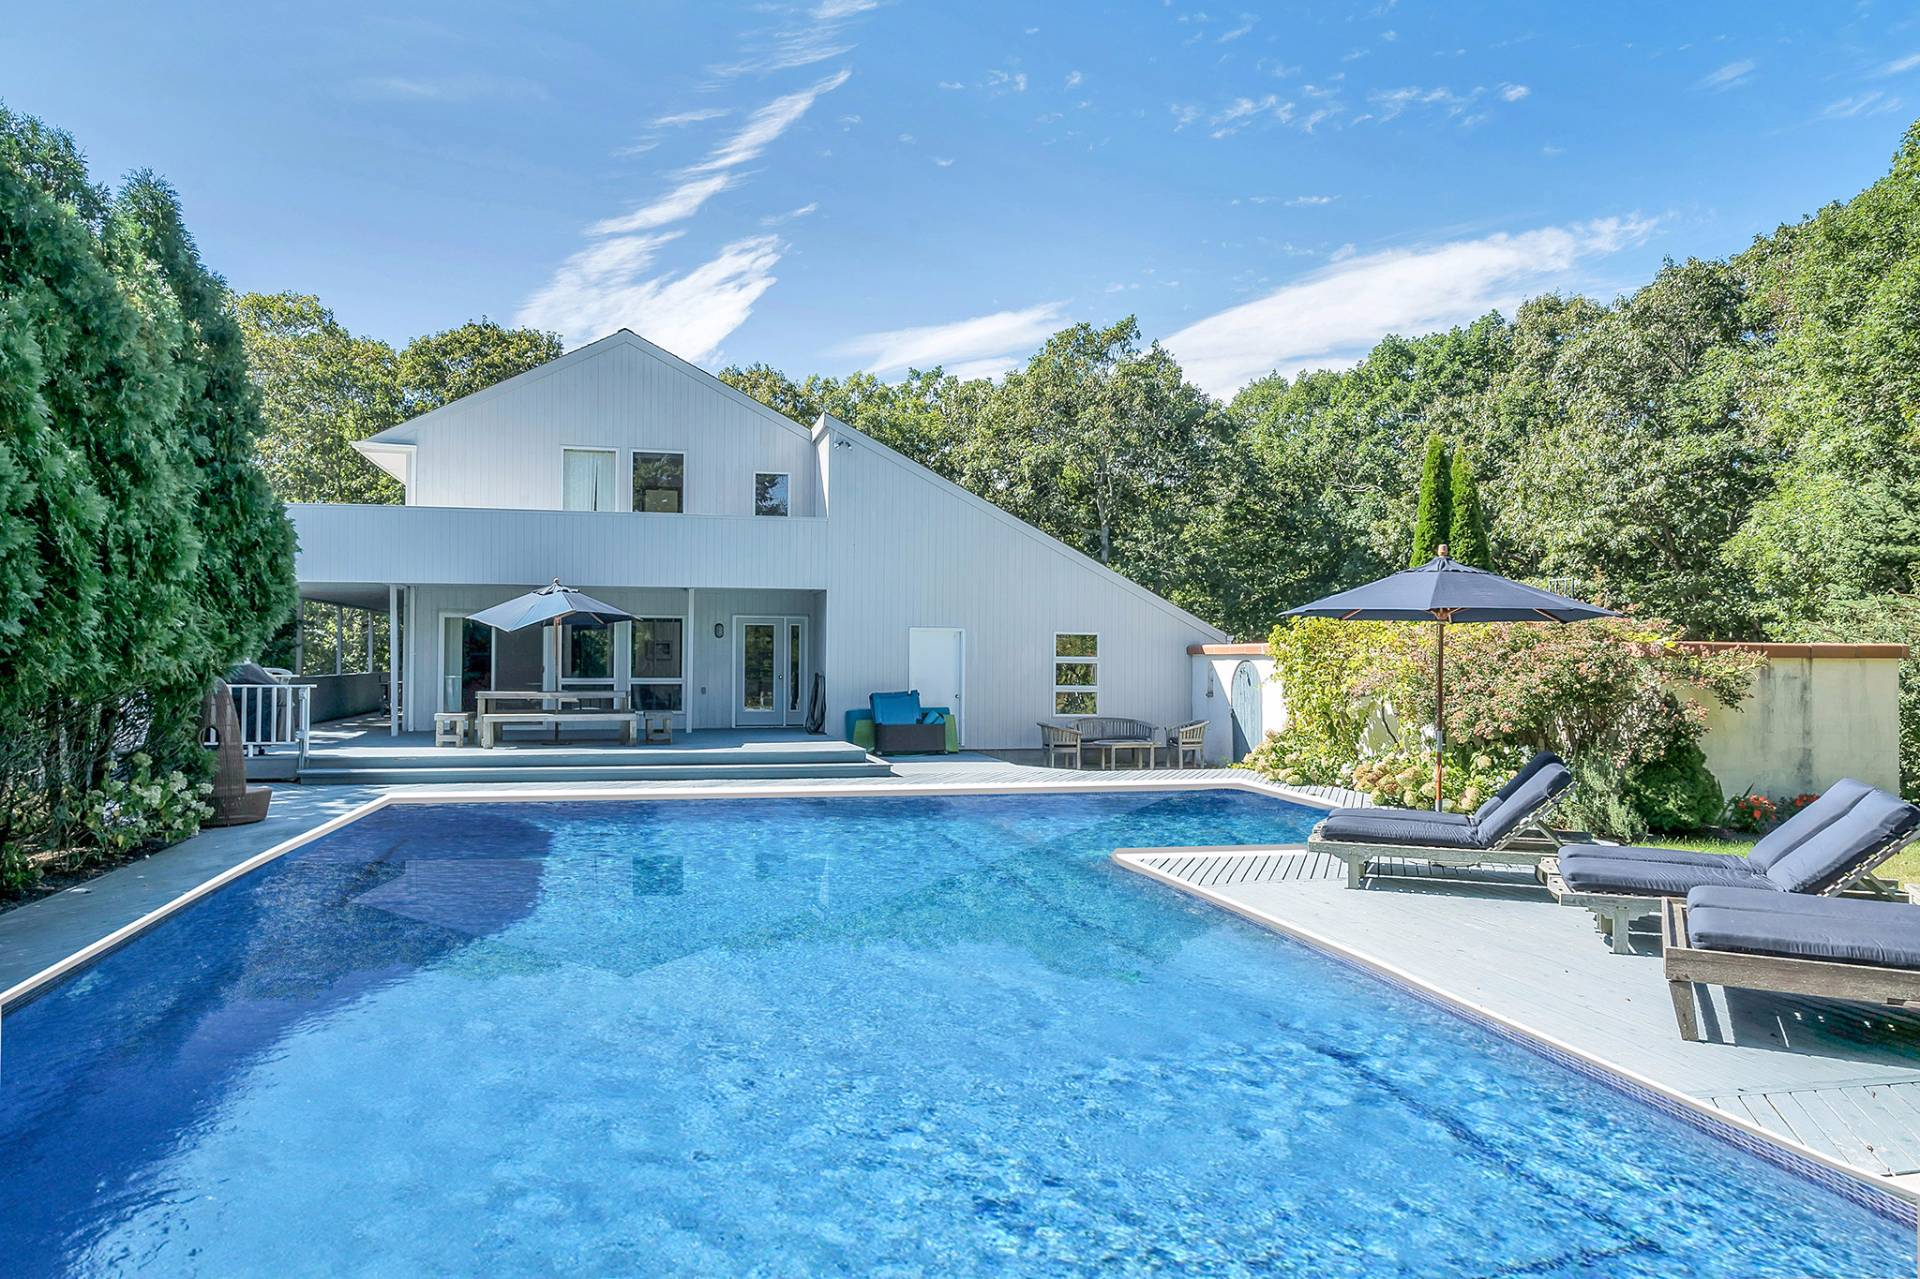 meet amagansett singles House located at 14 meeting house ln, amagansett, ny 11930 view sales history, tax history, home value estimates, and overhead views apn 0300171000400003000.